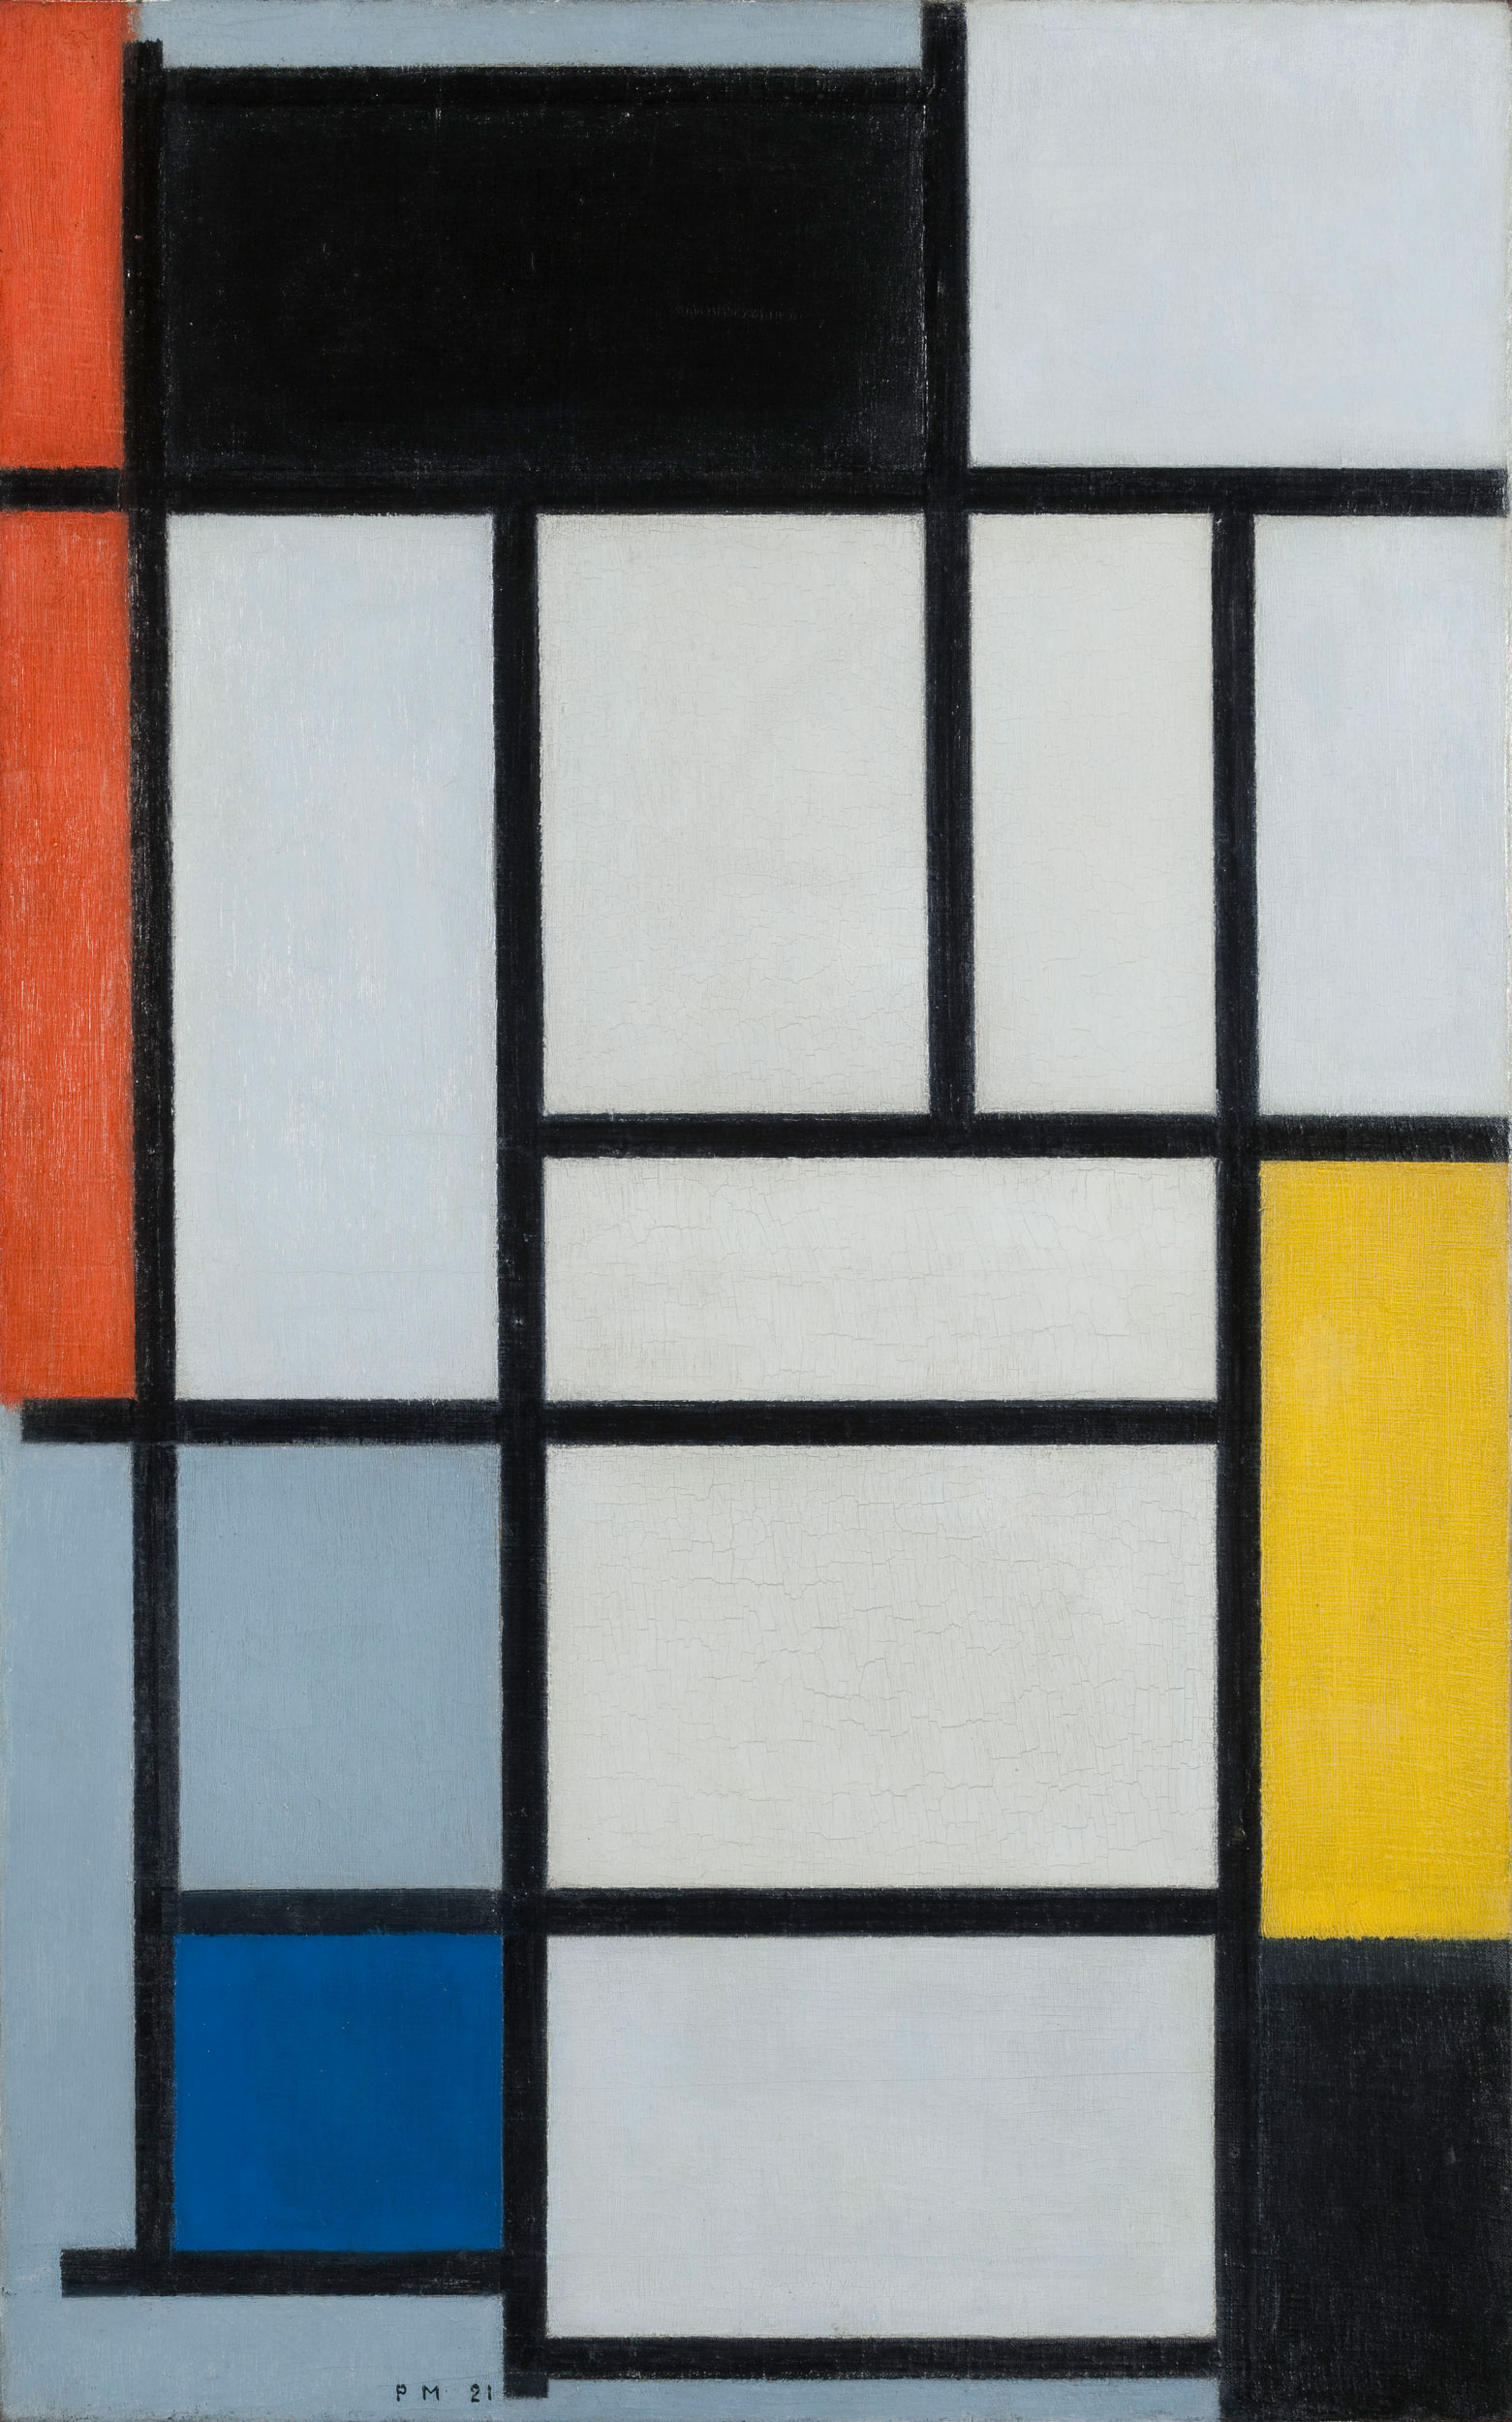 """Piet Mondrian, """" Composition with black, red, yellow, blue and gray"""", 1921, oil on canvas, courtesy of Kunstmuseum Den Haag, the Hague"""